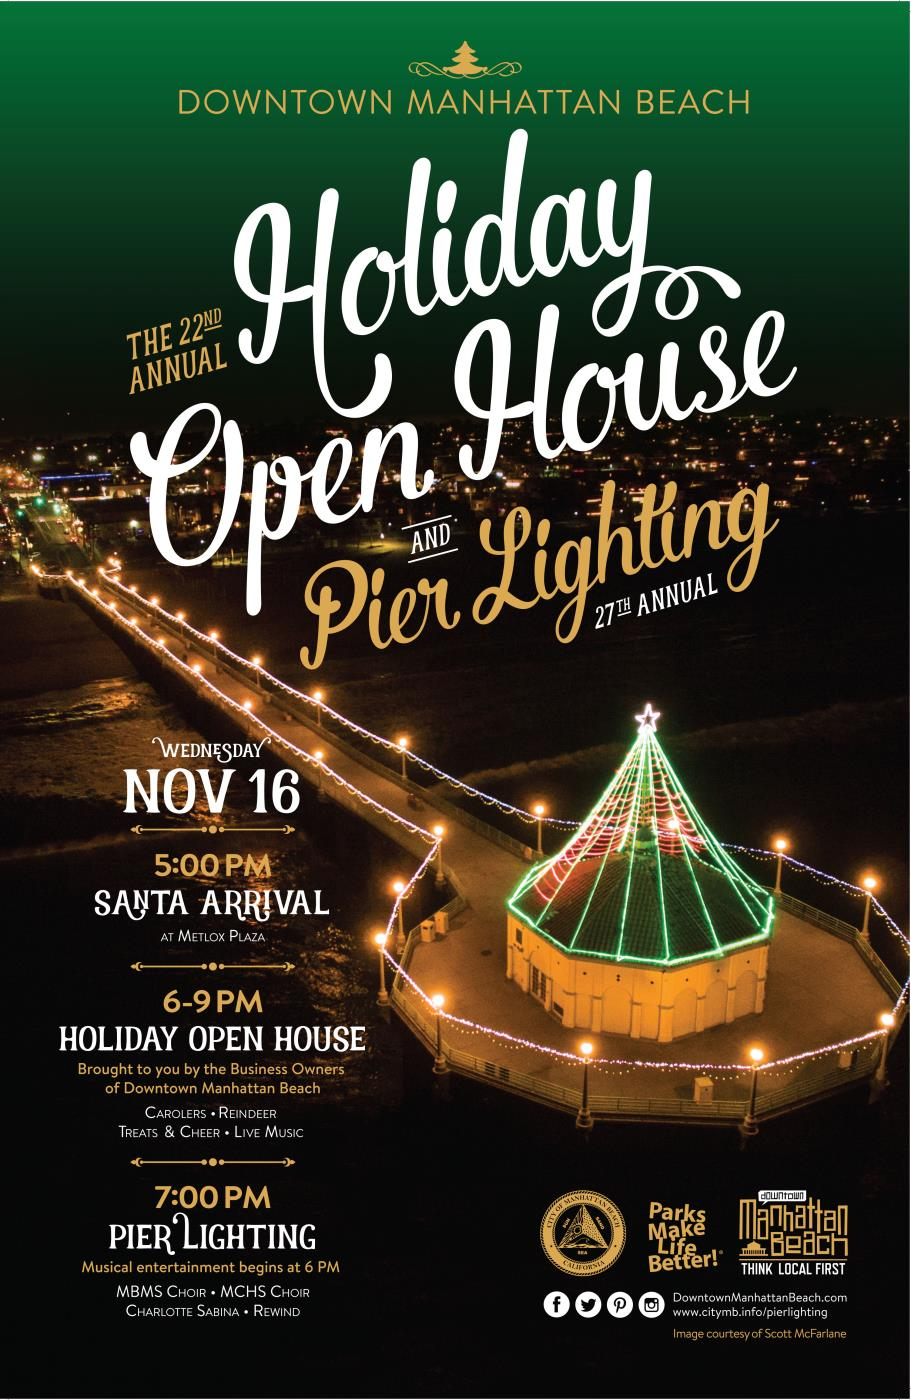 Pier Lighting & Holiday Open House Poster